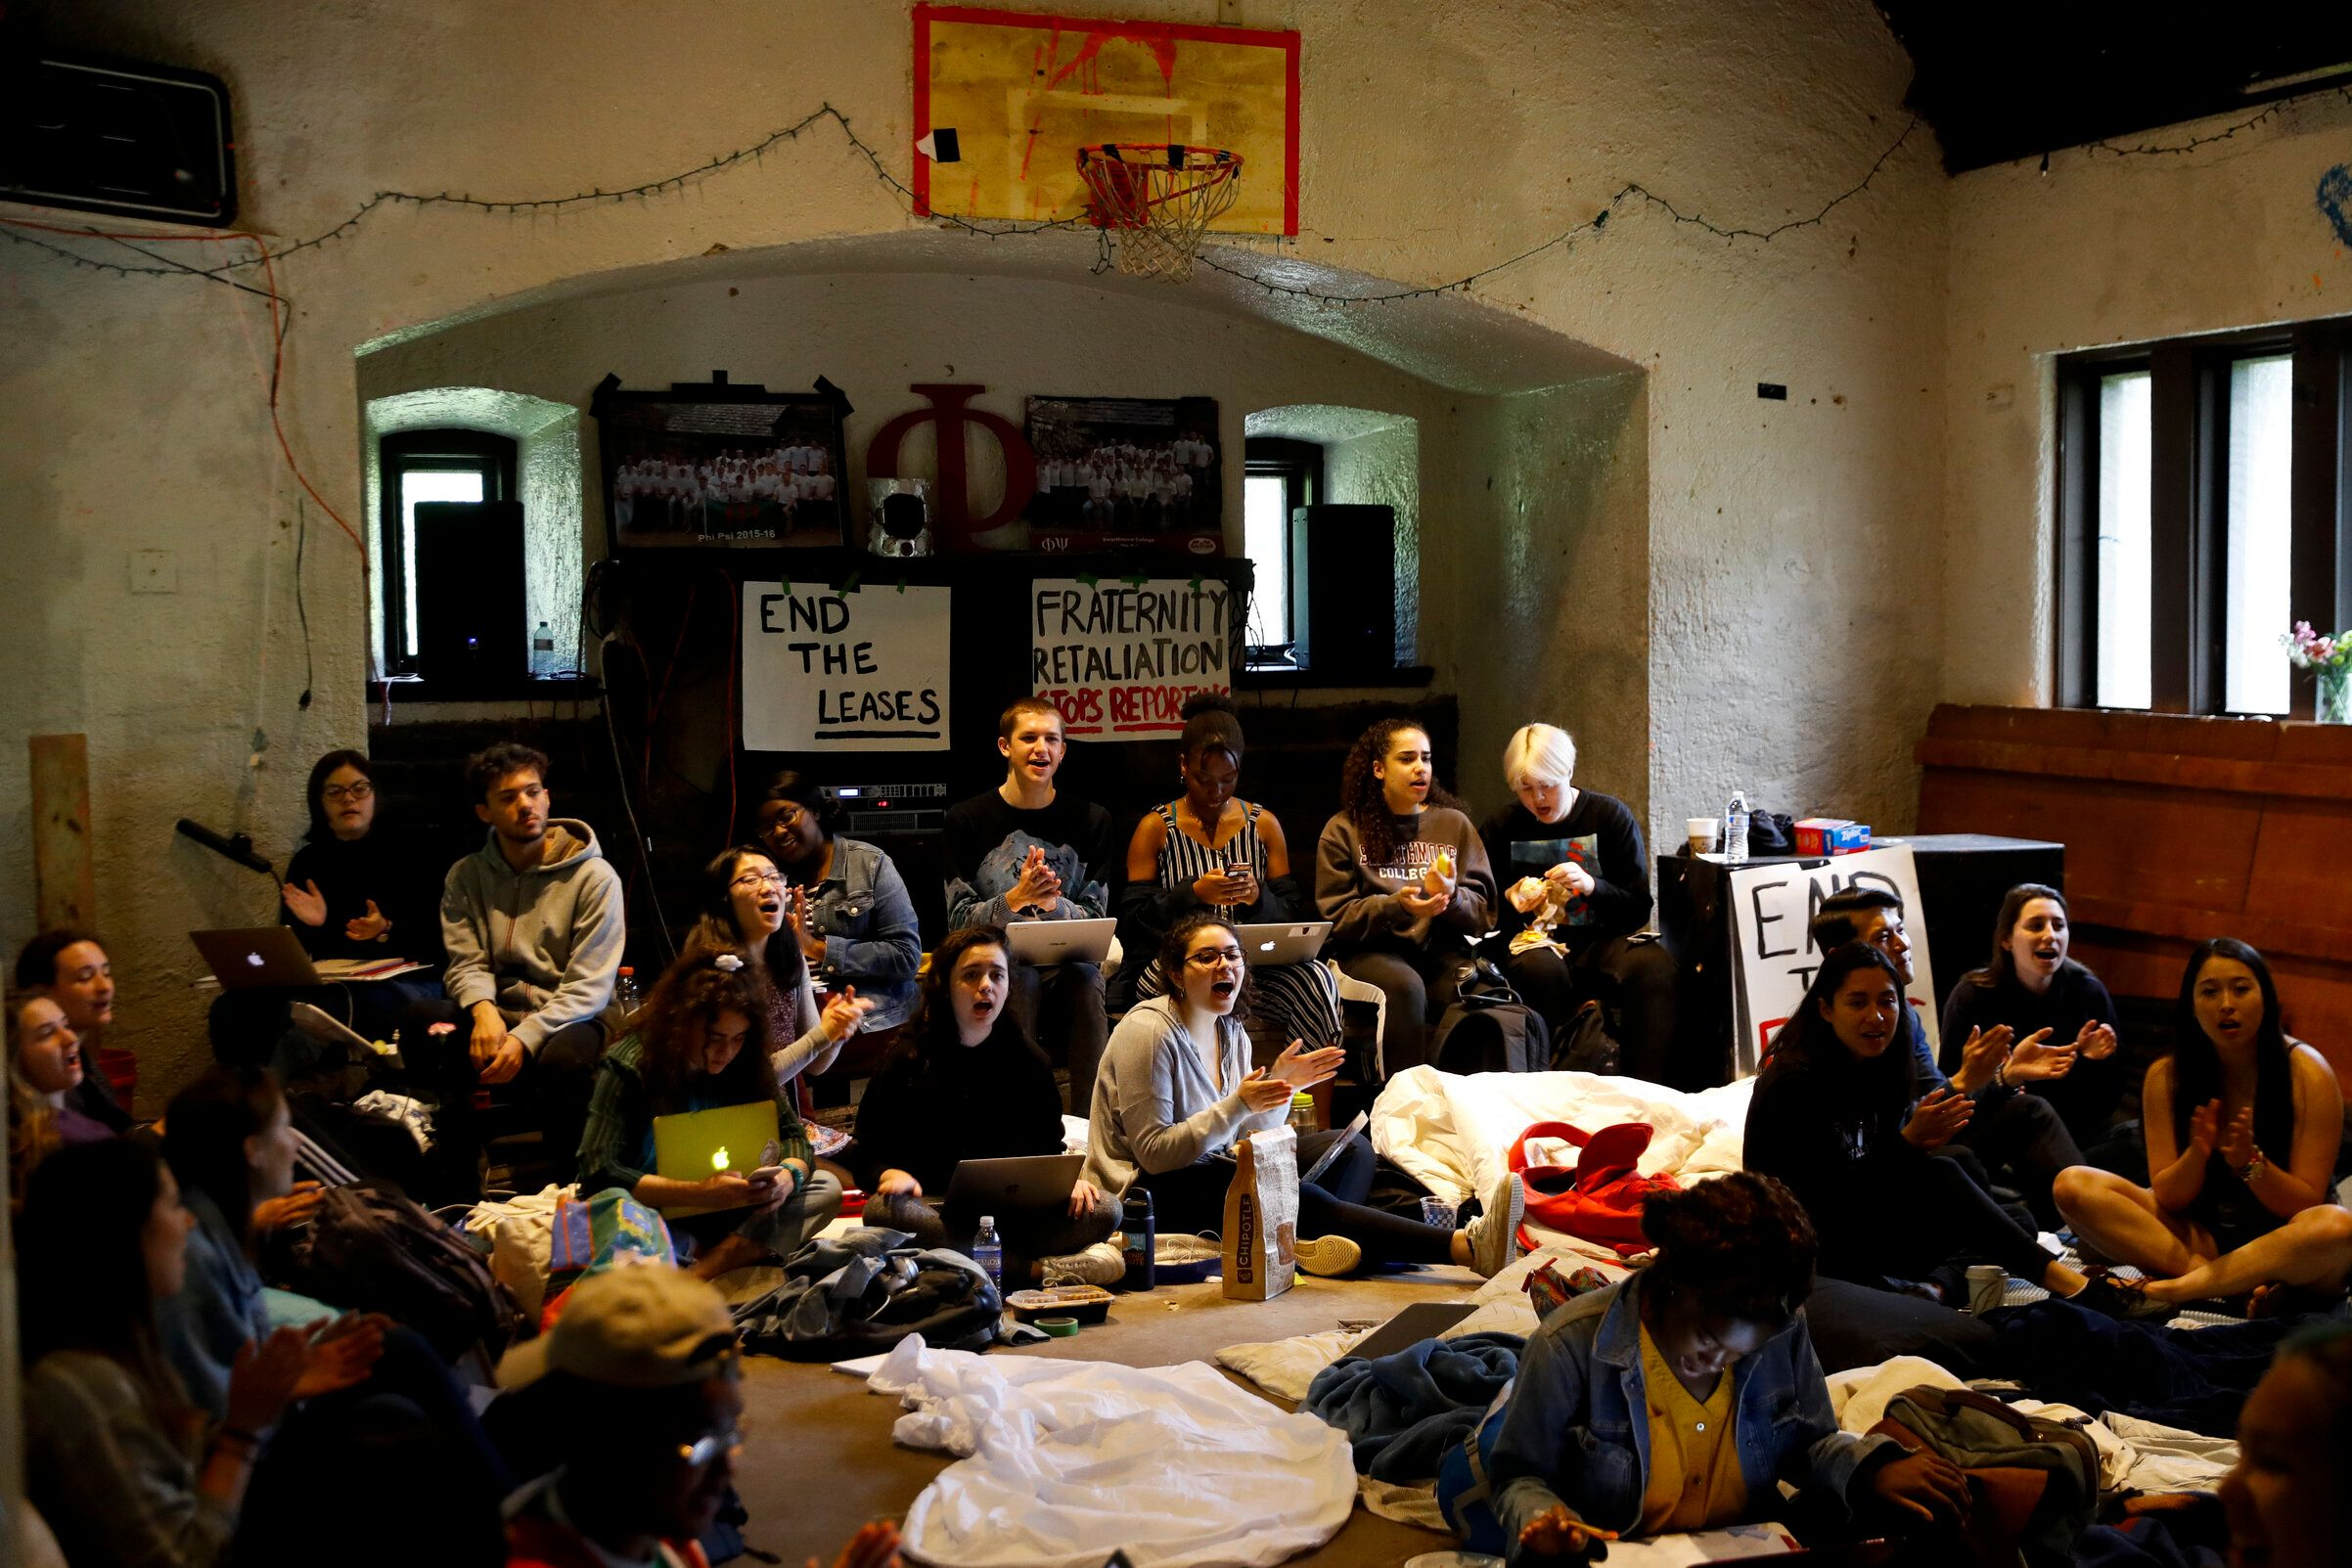 Swarthmore College students sing during a sit-in at the Phi Psi fraternity house, Monday, April 29, 2019, in Swarthmore, Pa. Students at the suburban Philadelphia college have occupied the on-campus fraternity house in an effort to get it shut down after documents allegedly belonging to Phi Psi surfaced this month containing derogatory comments about women and the LGBTQ community and jokes about sexual assault. (AP Photo)